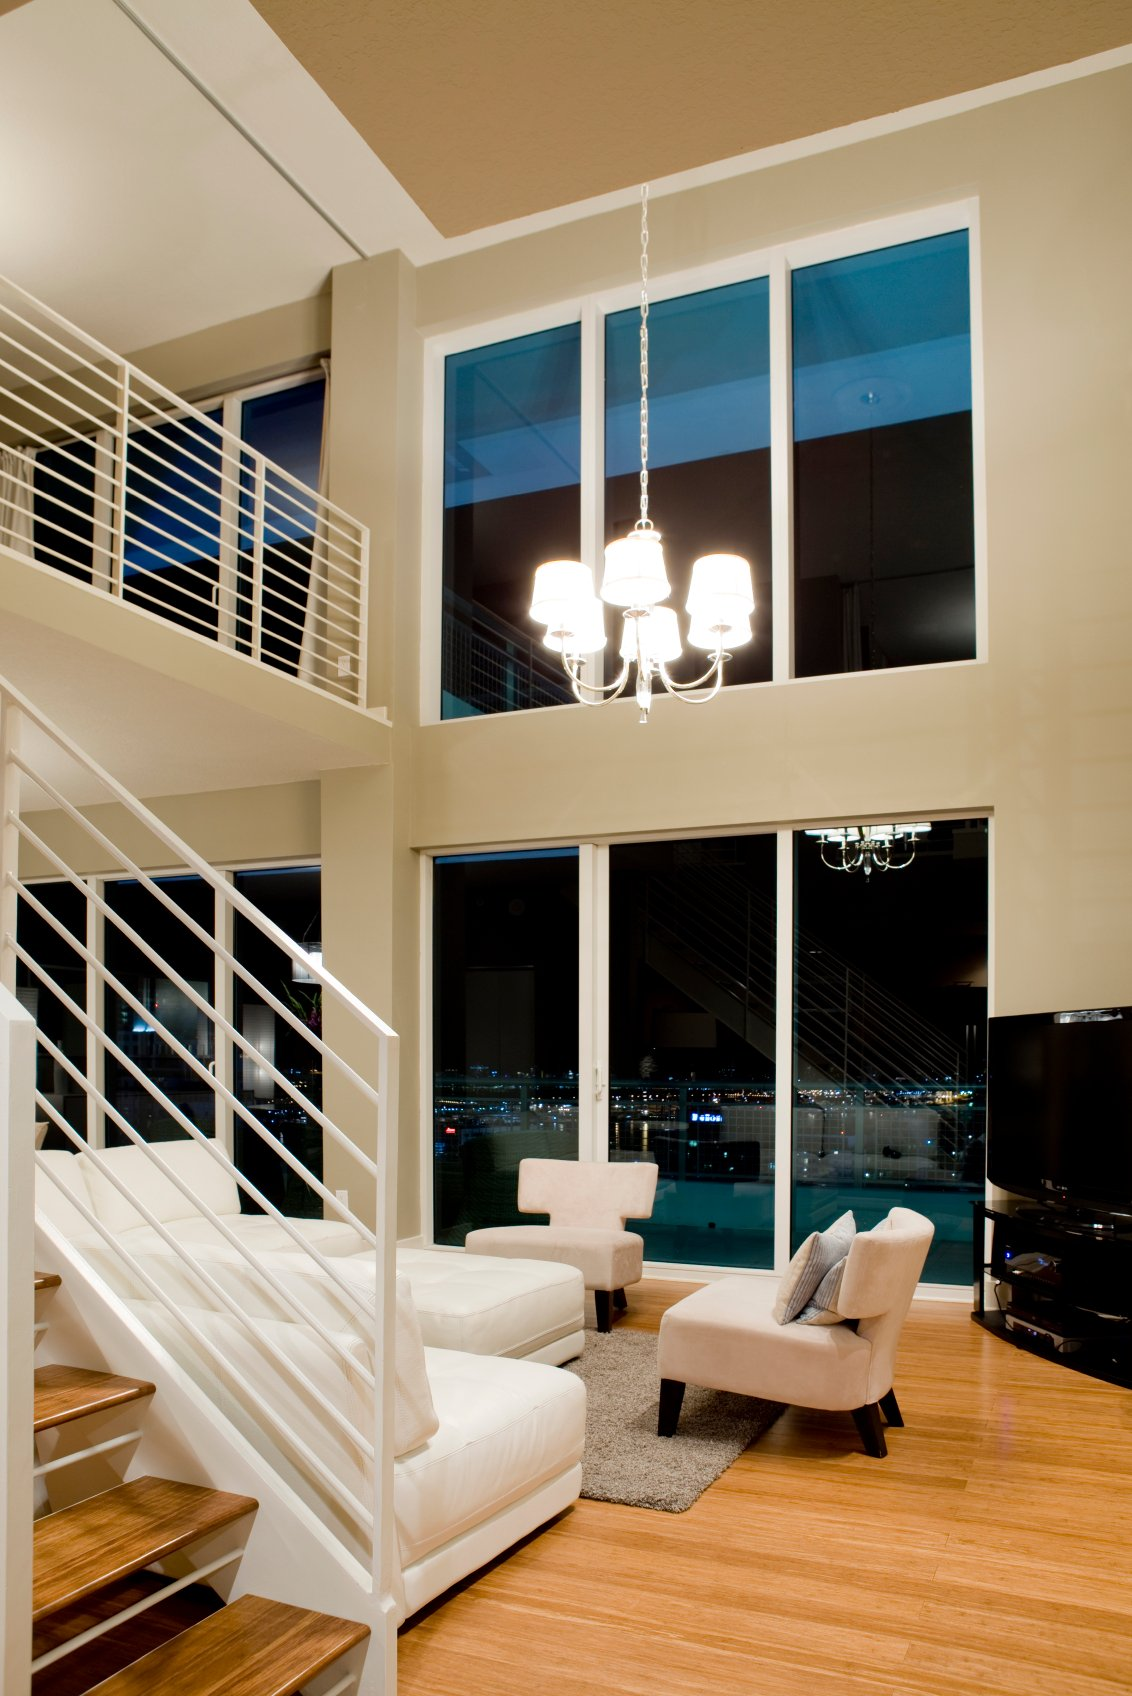 Minimalist, modern living room sets white furniture and beige wall tones against natural hardwood flooring and stairs, with an array of full height windows affording expansive views.